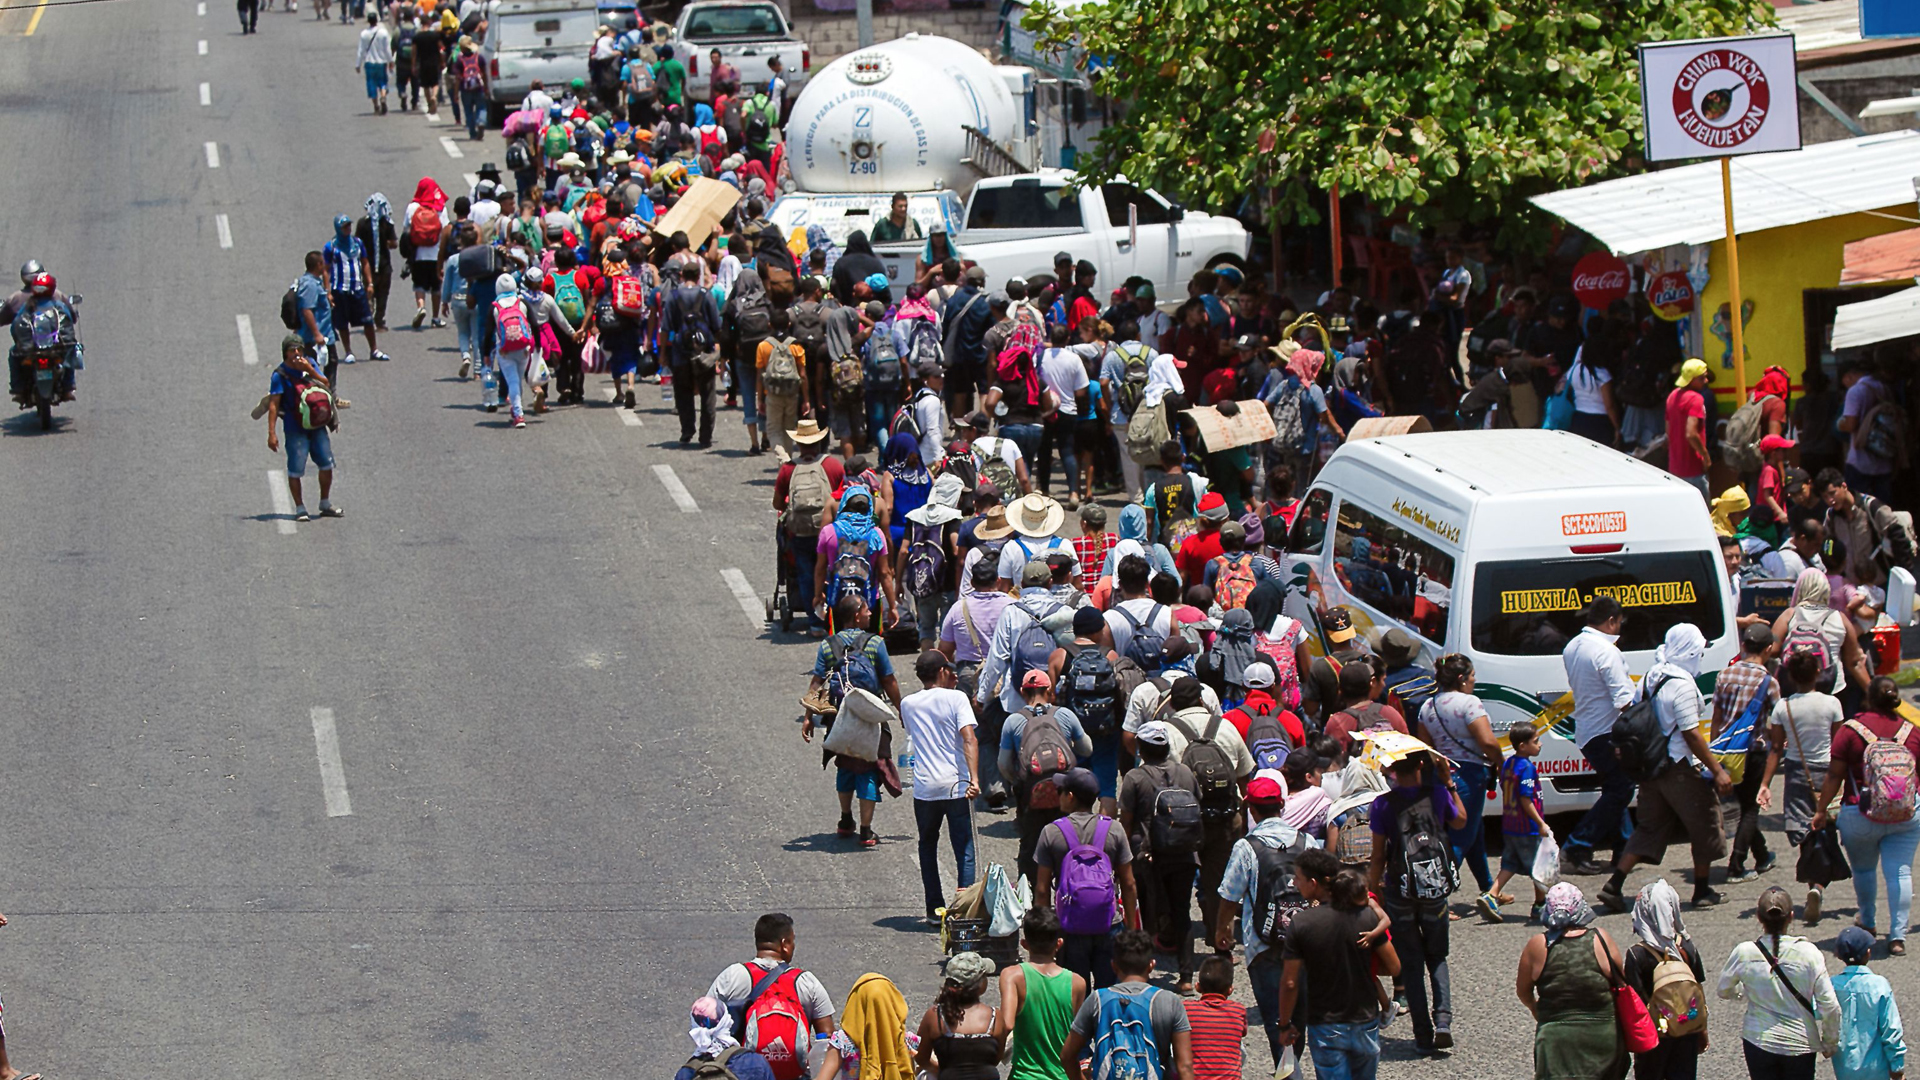 Central American migrants heading in a caravan to the U.S. arrive in Huehuetan, Chiapas state, Mexico, on April 15, 2019. (Credit: PEP COMPANYS/AFP/Getty Images)